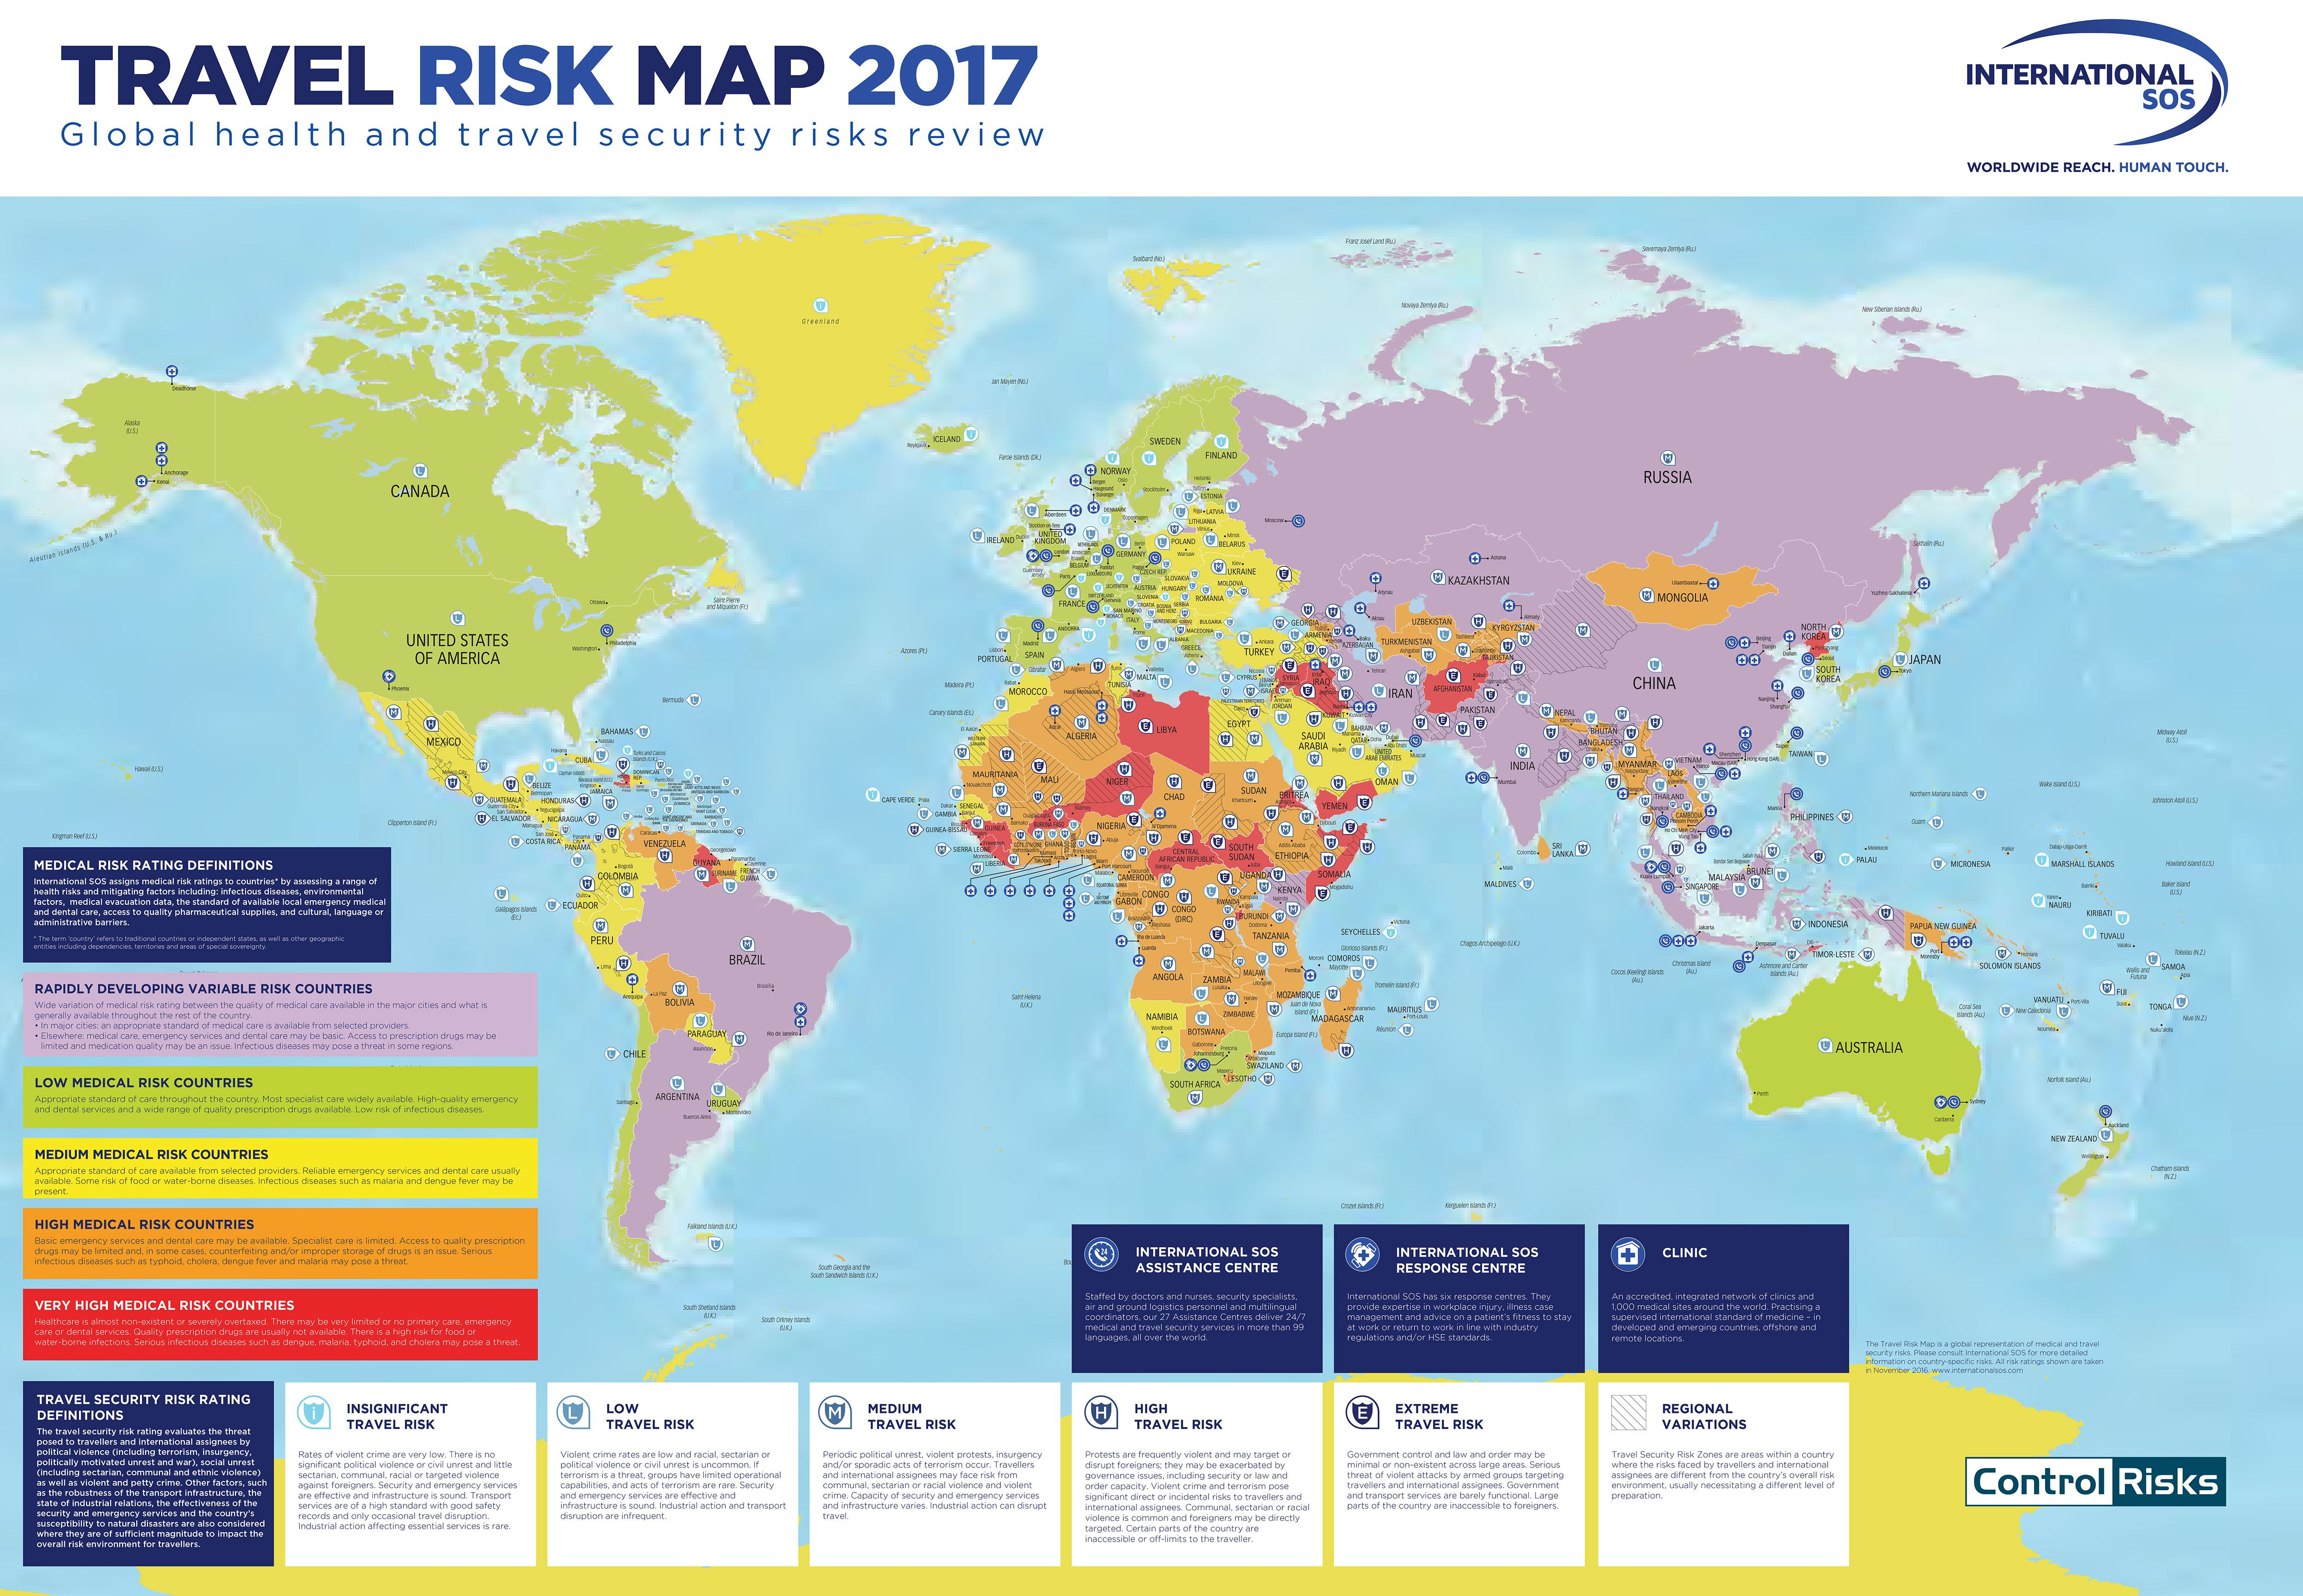 World travel risk map 2017 which countries are safedangerous explore world maps geography and more gumiabroncs Choice Image